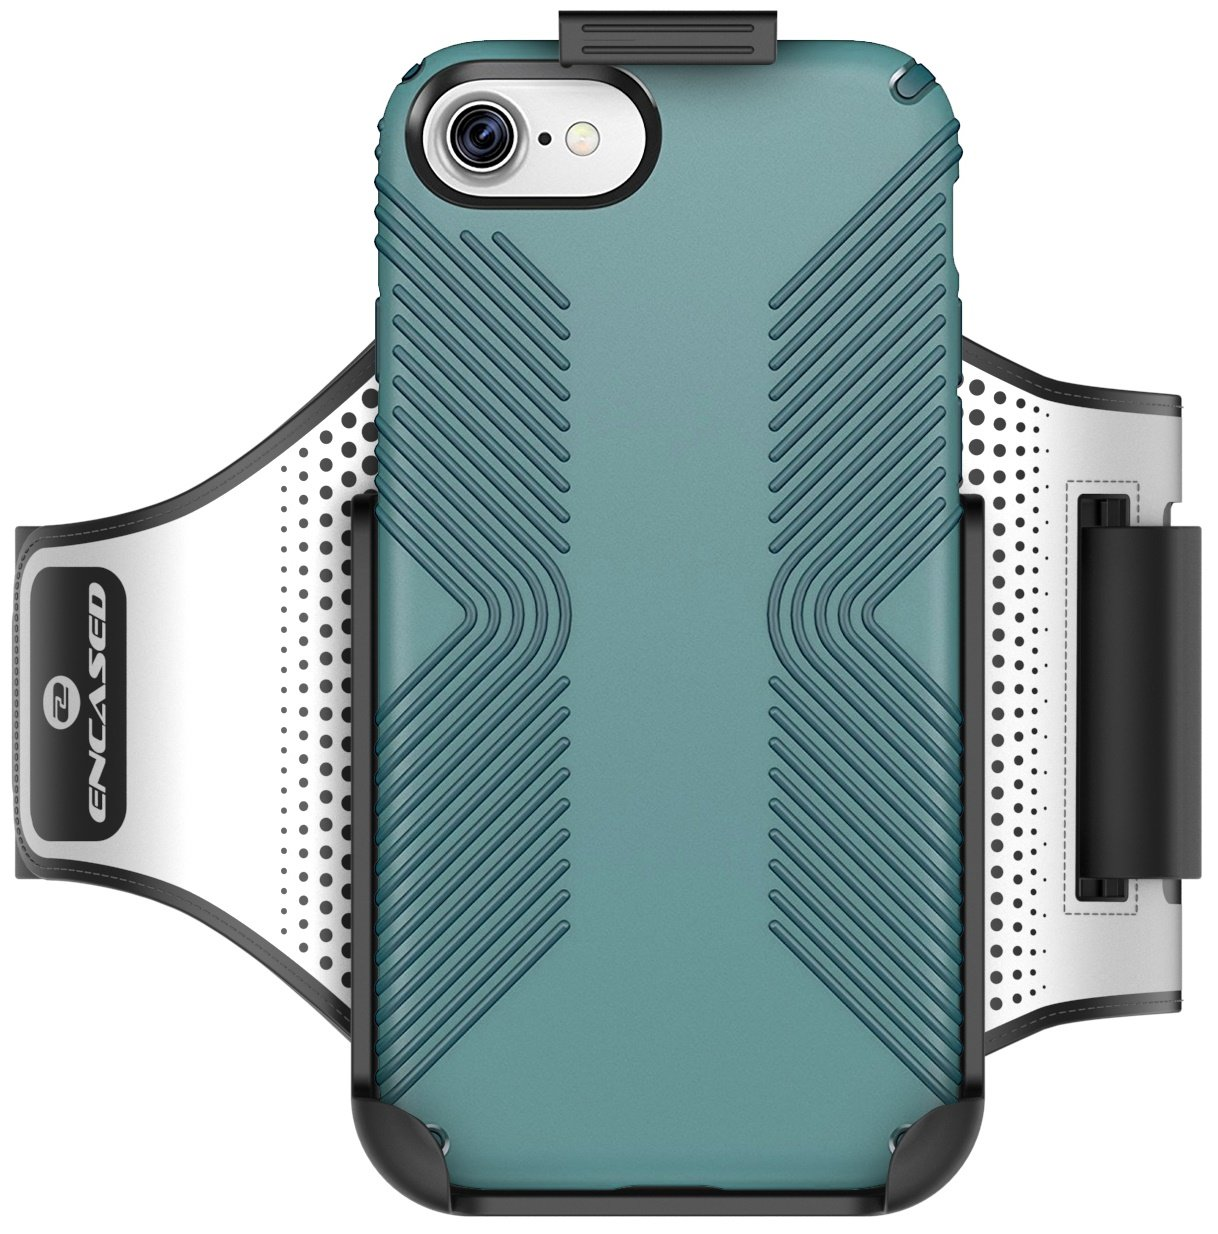 best sneakers f8625 02413 iPhone 7 Plus Speck Presidio Grip Armband